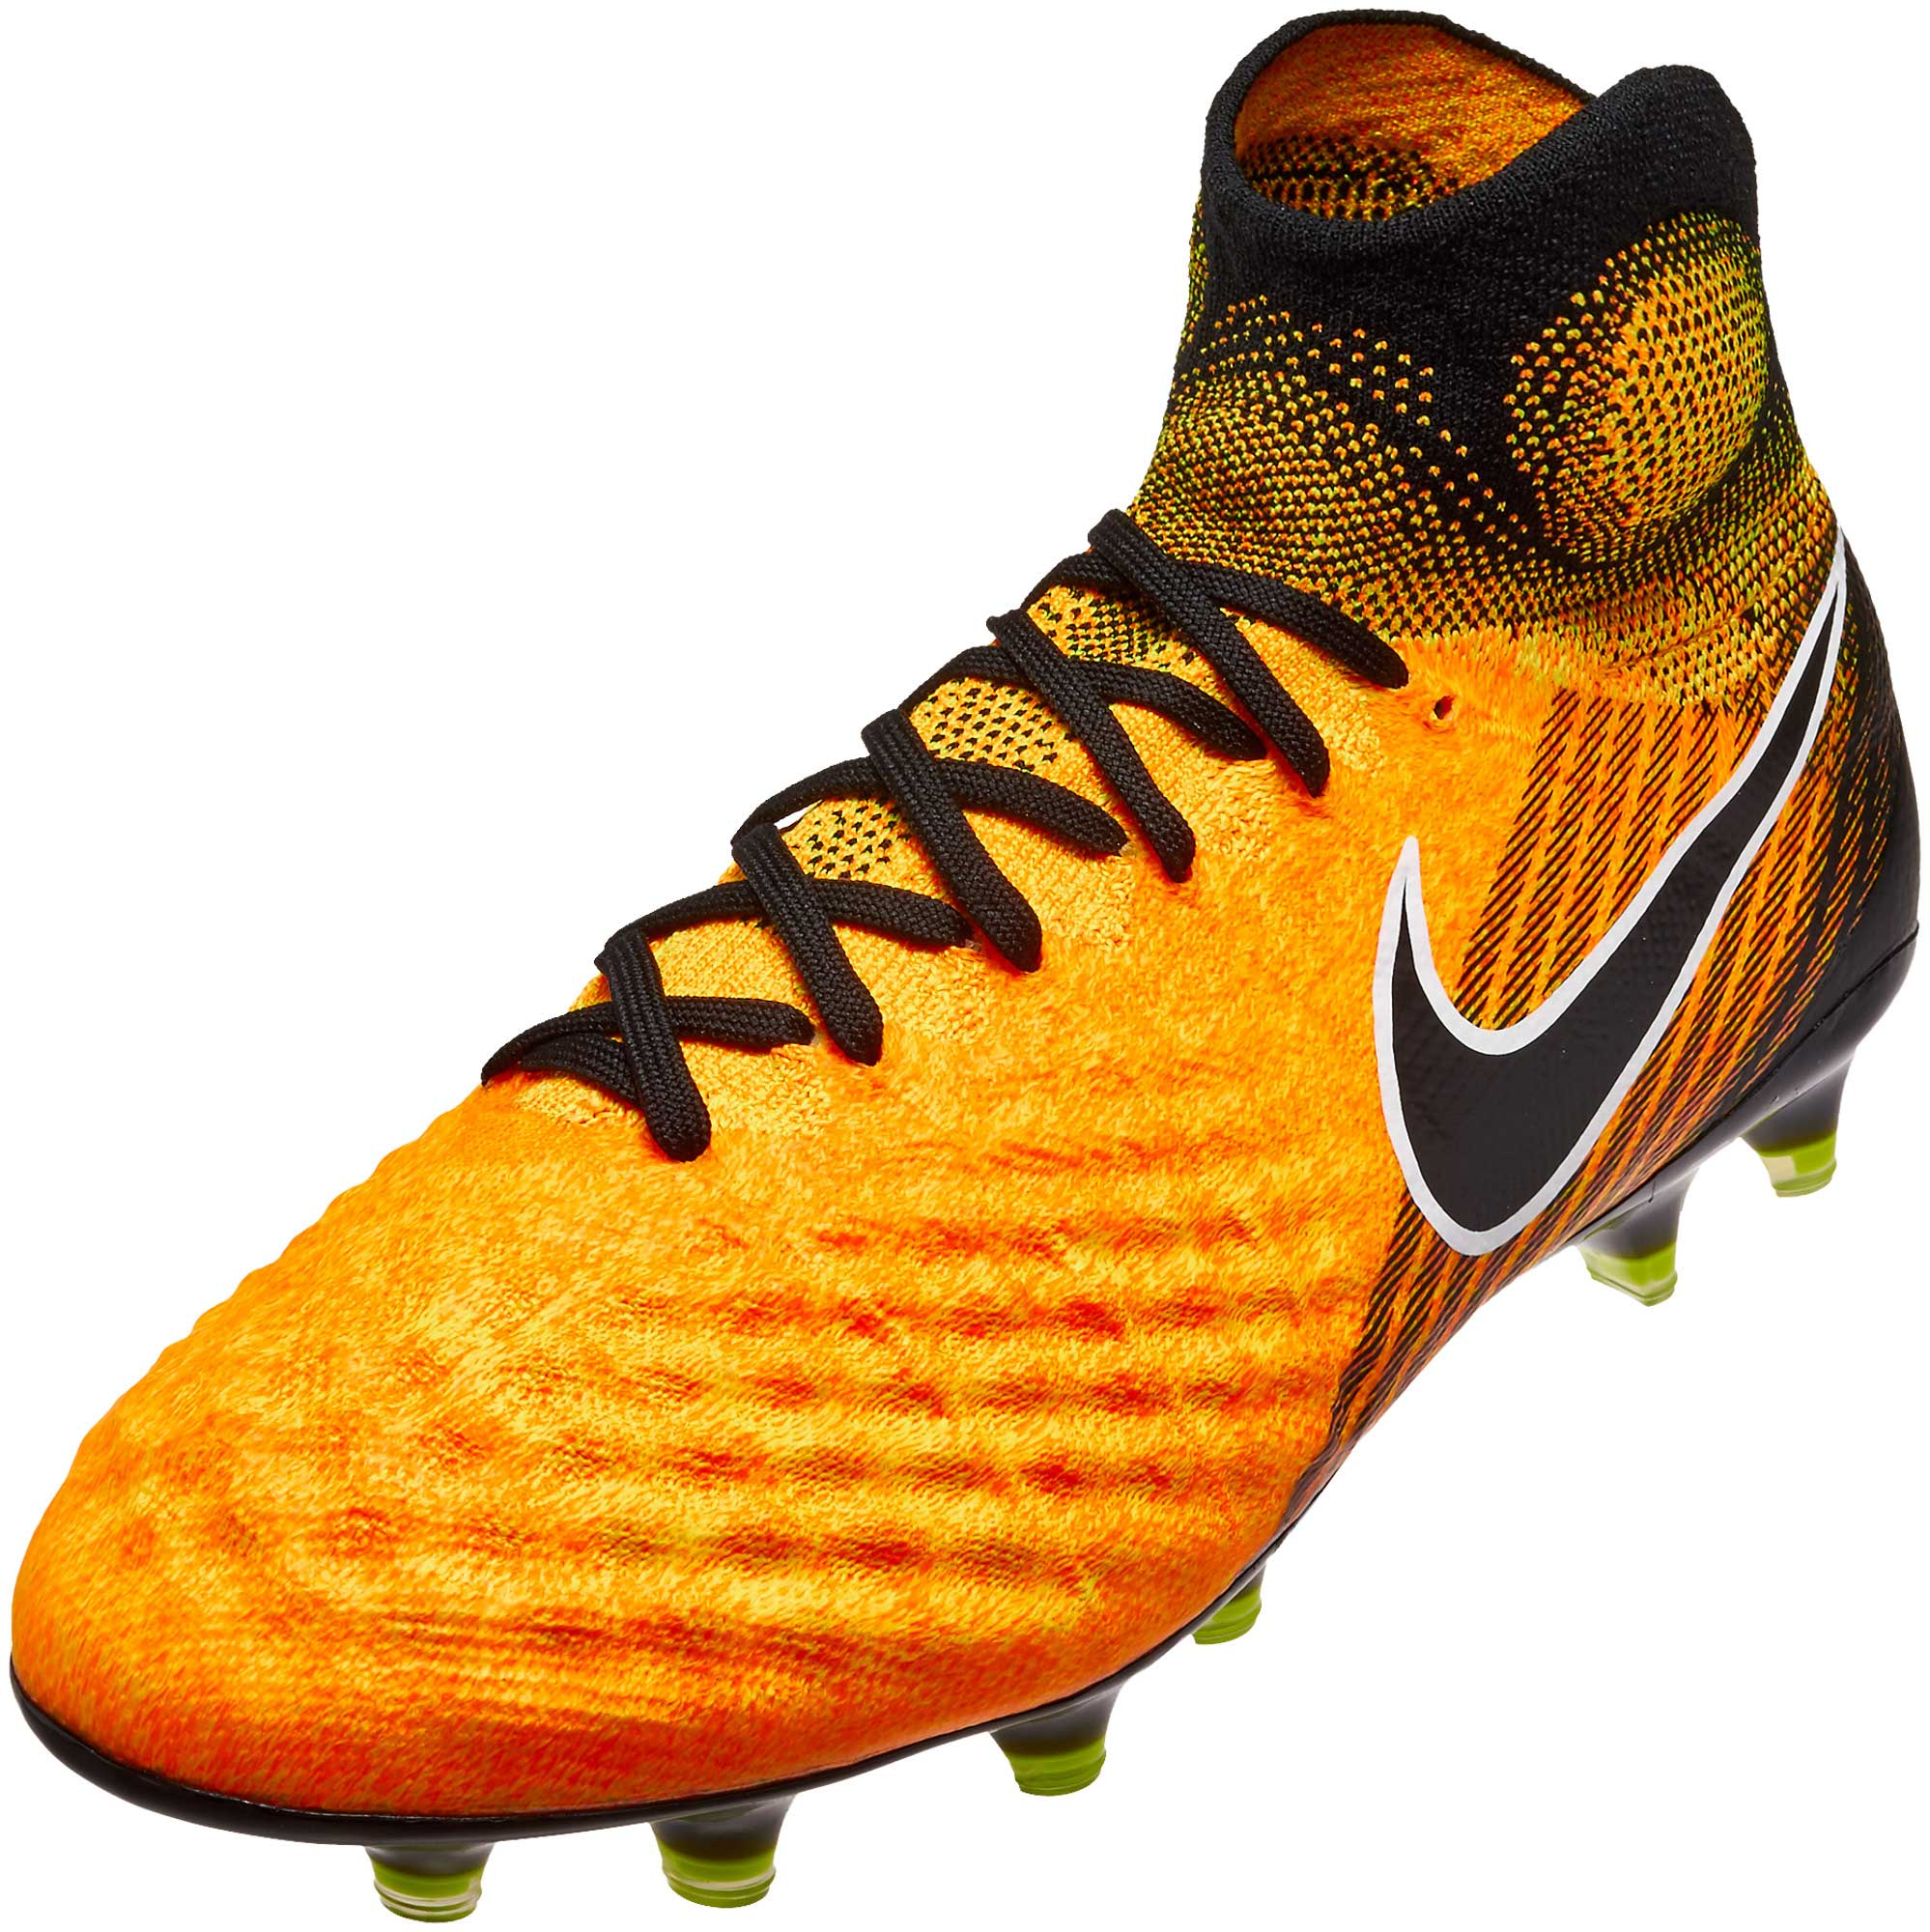 4def116e1fd4 Nike Magista Obra II FG Soccer Cleats - Laser Orange   Black ...